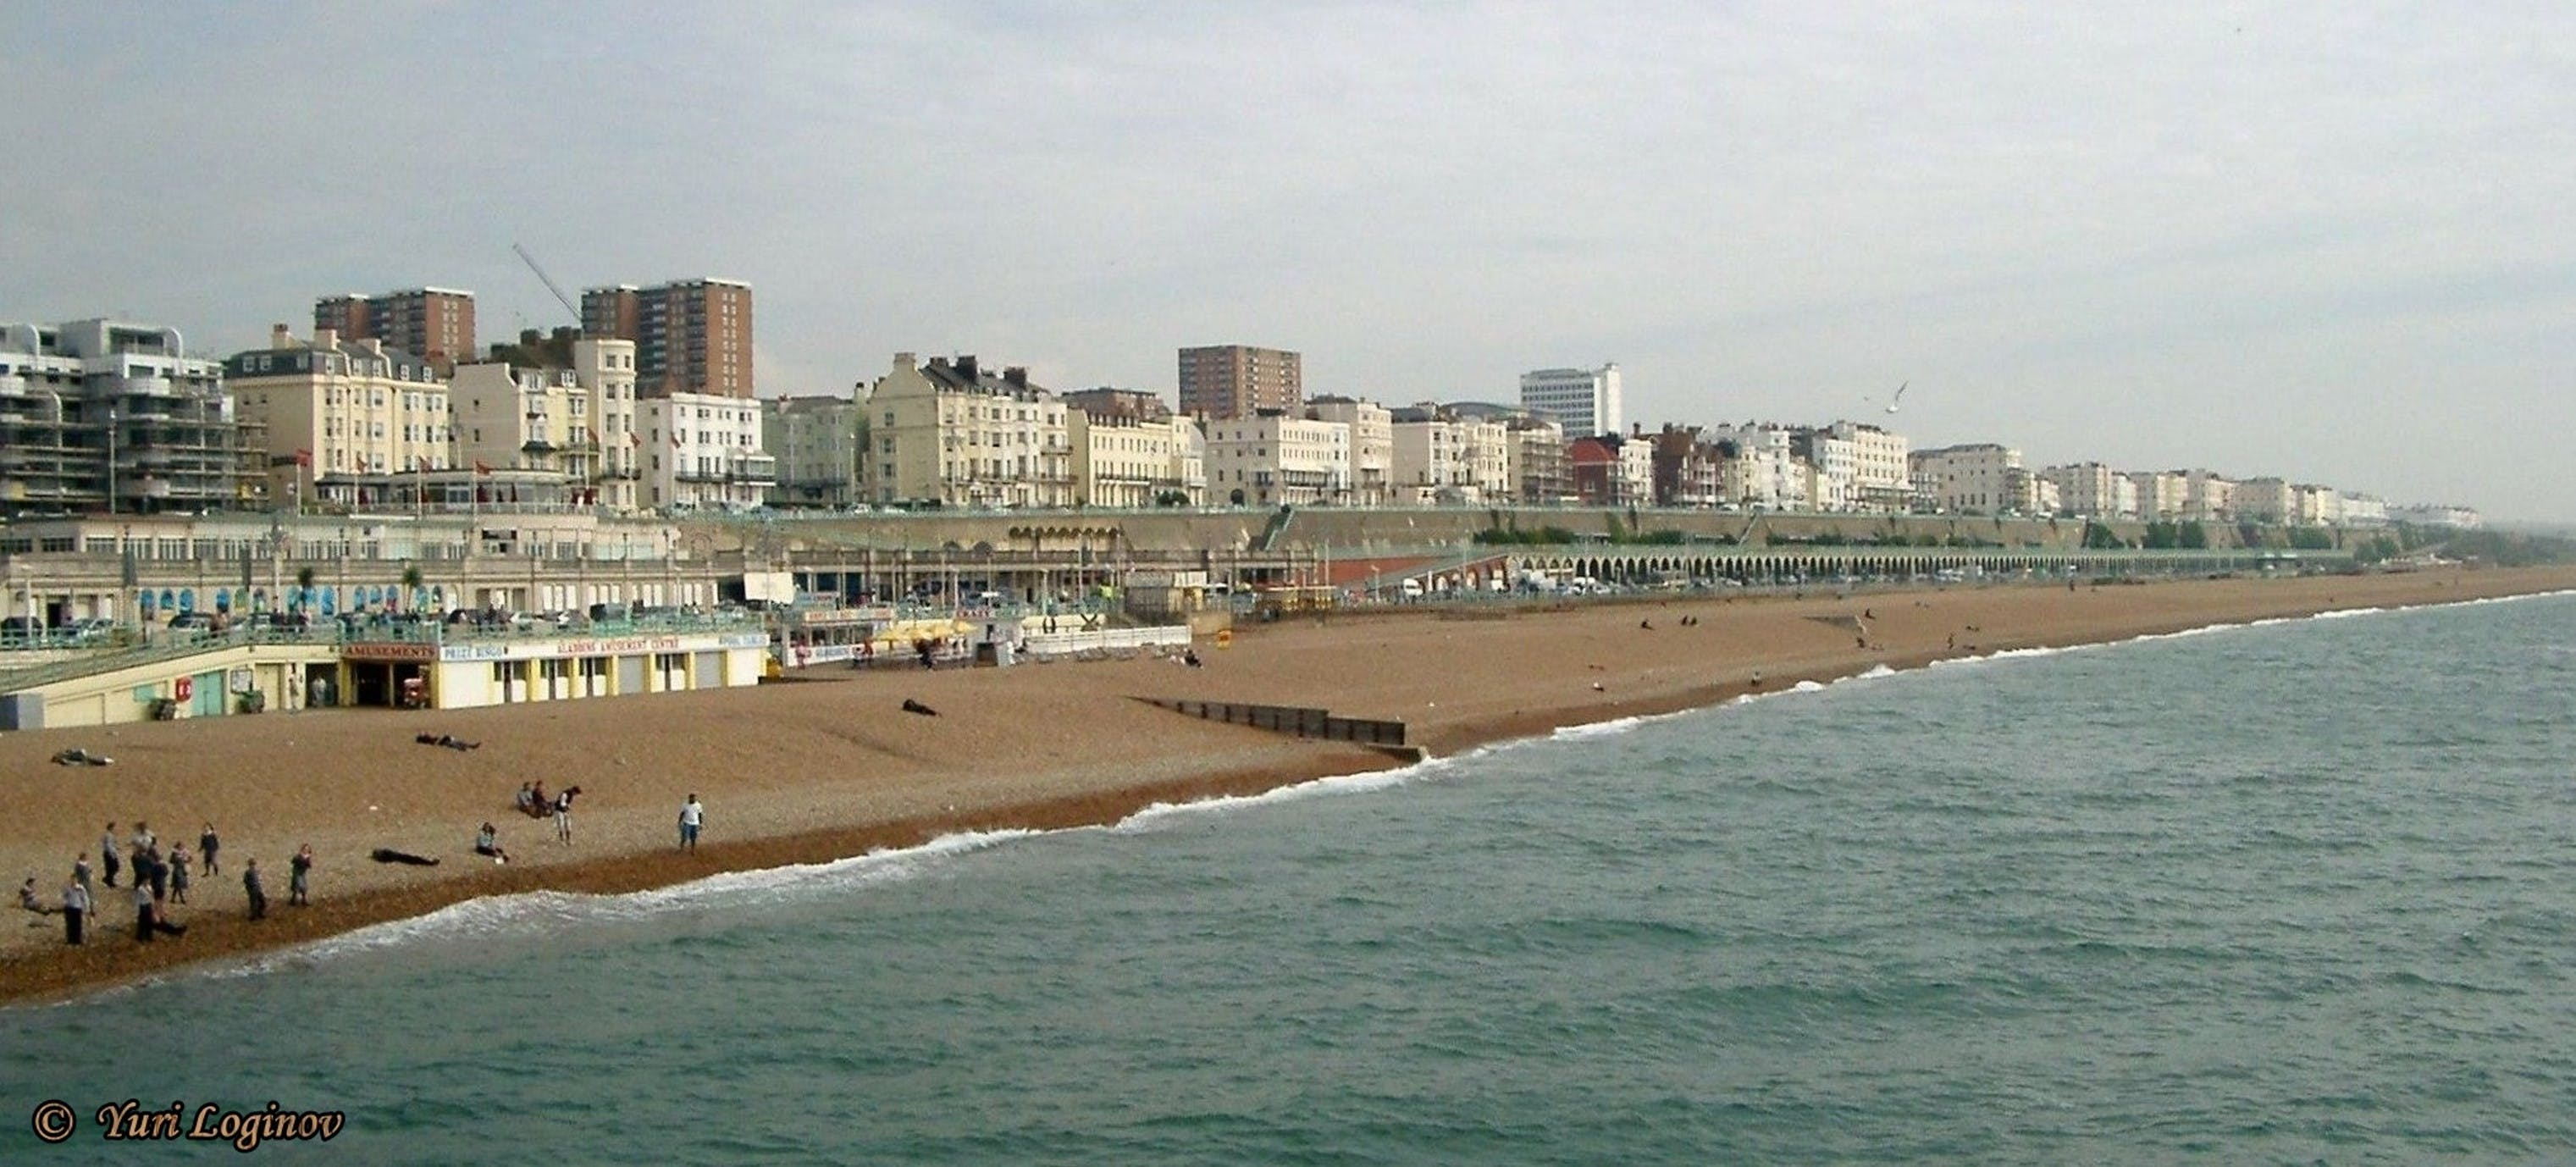 Free stock photo of england, united kingdom, brighton